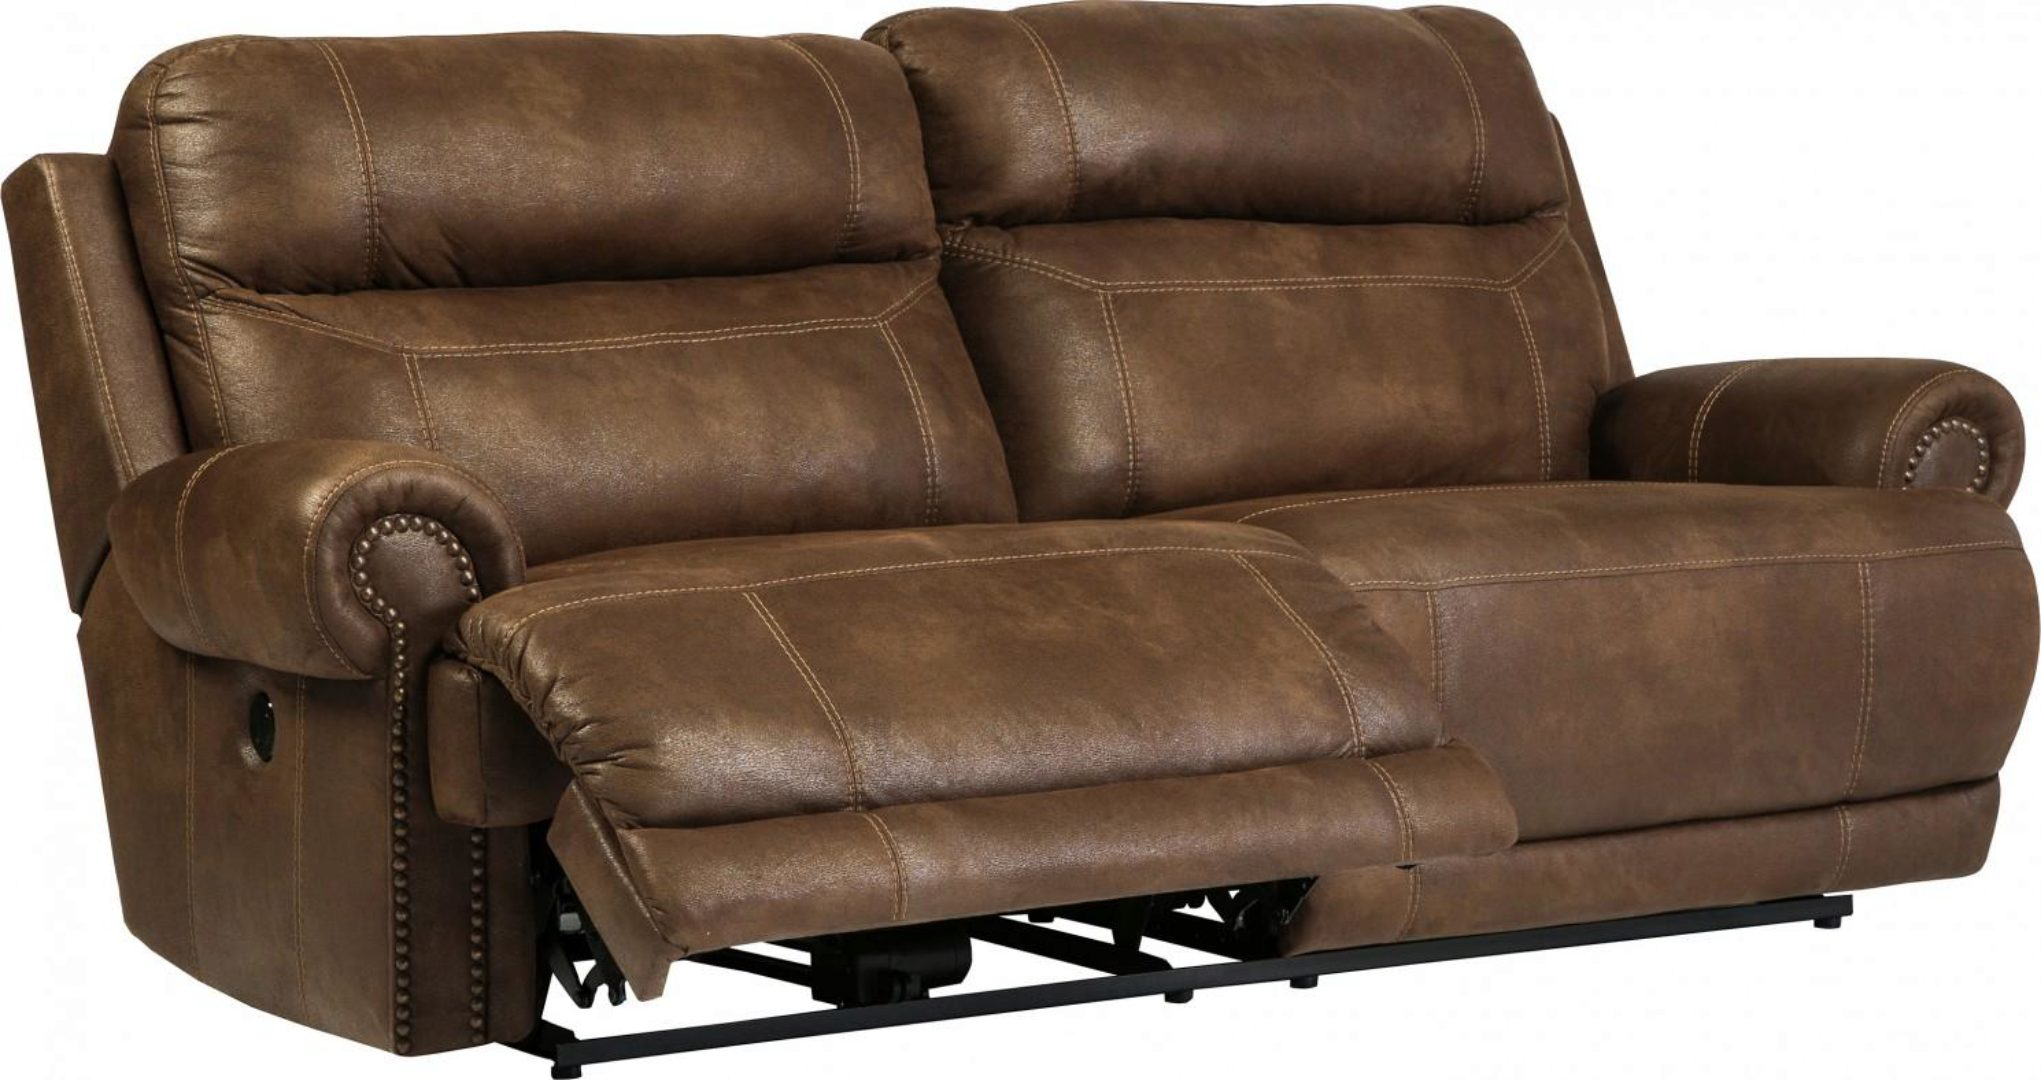 Brown Faux Leather Reclining Sofa Set 3pcs Power Contemporary Ashley Austere 38400 47 96 82 Kit